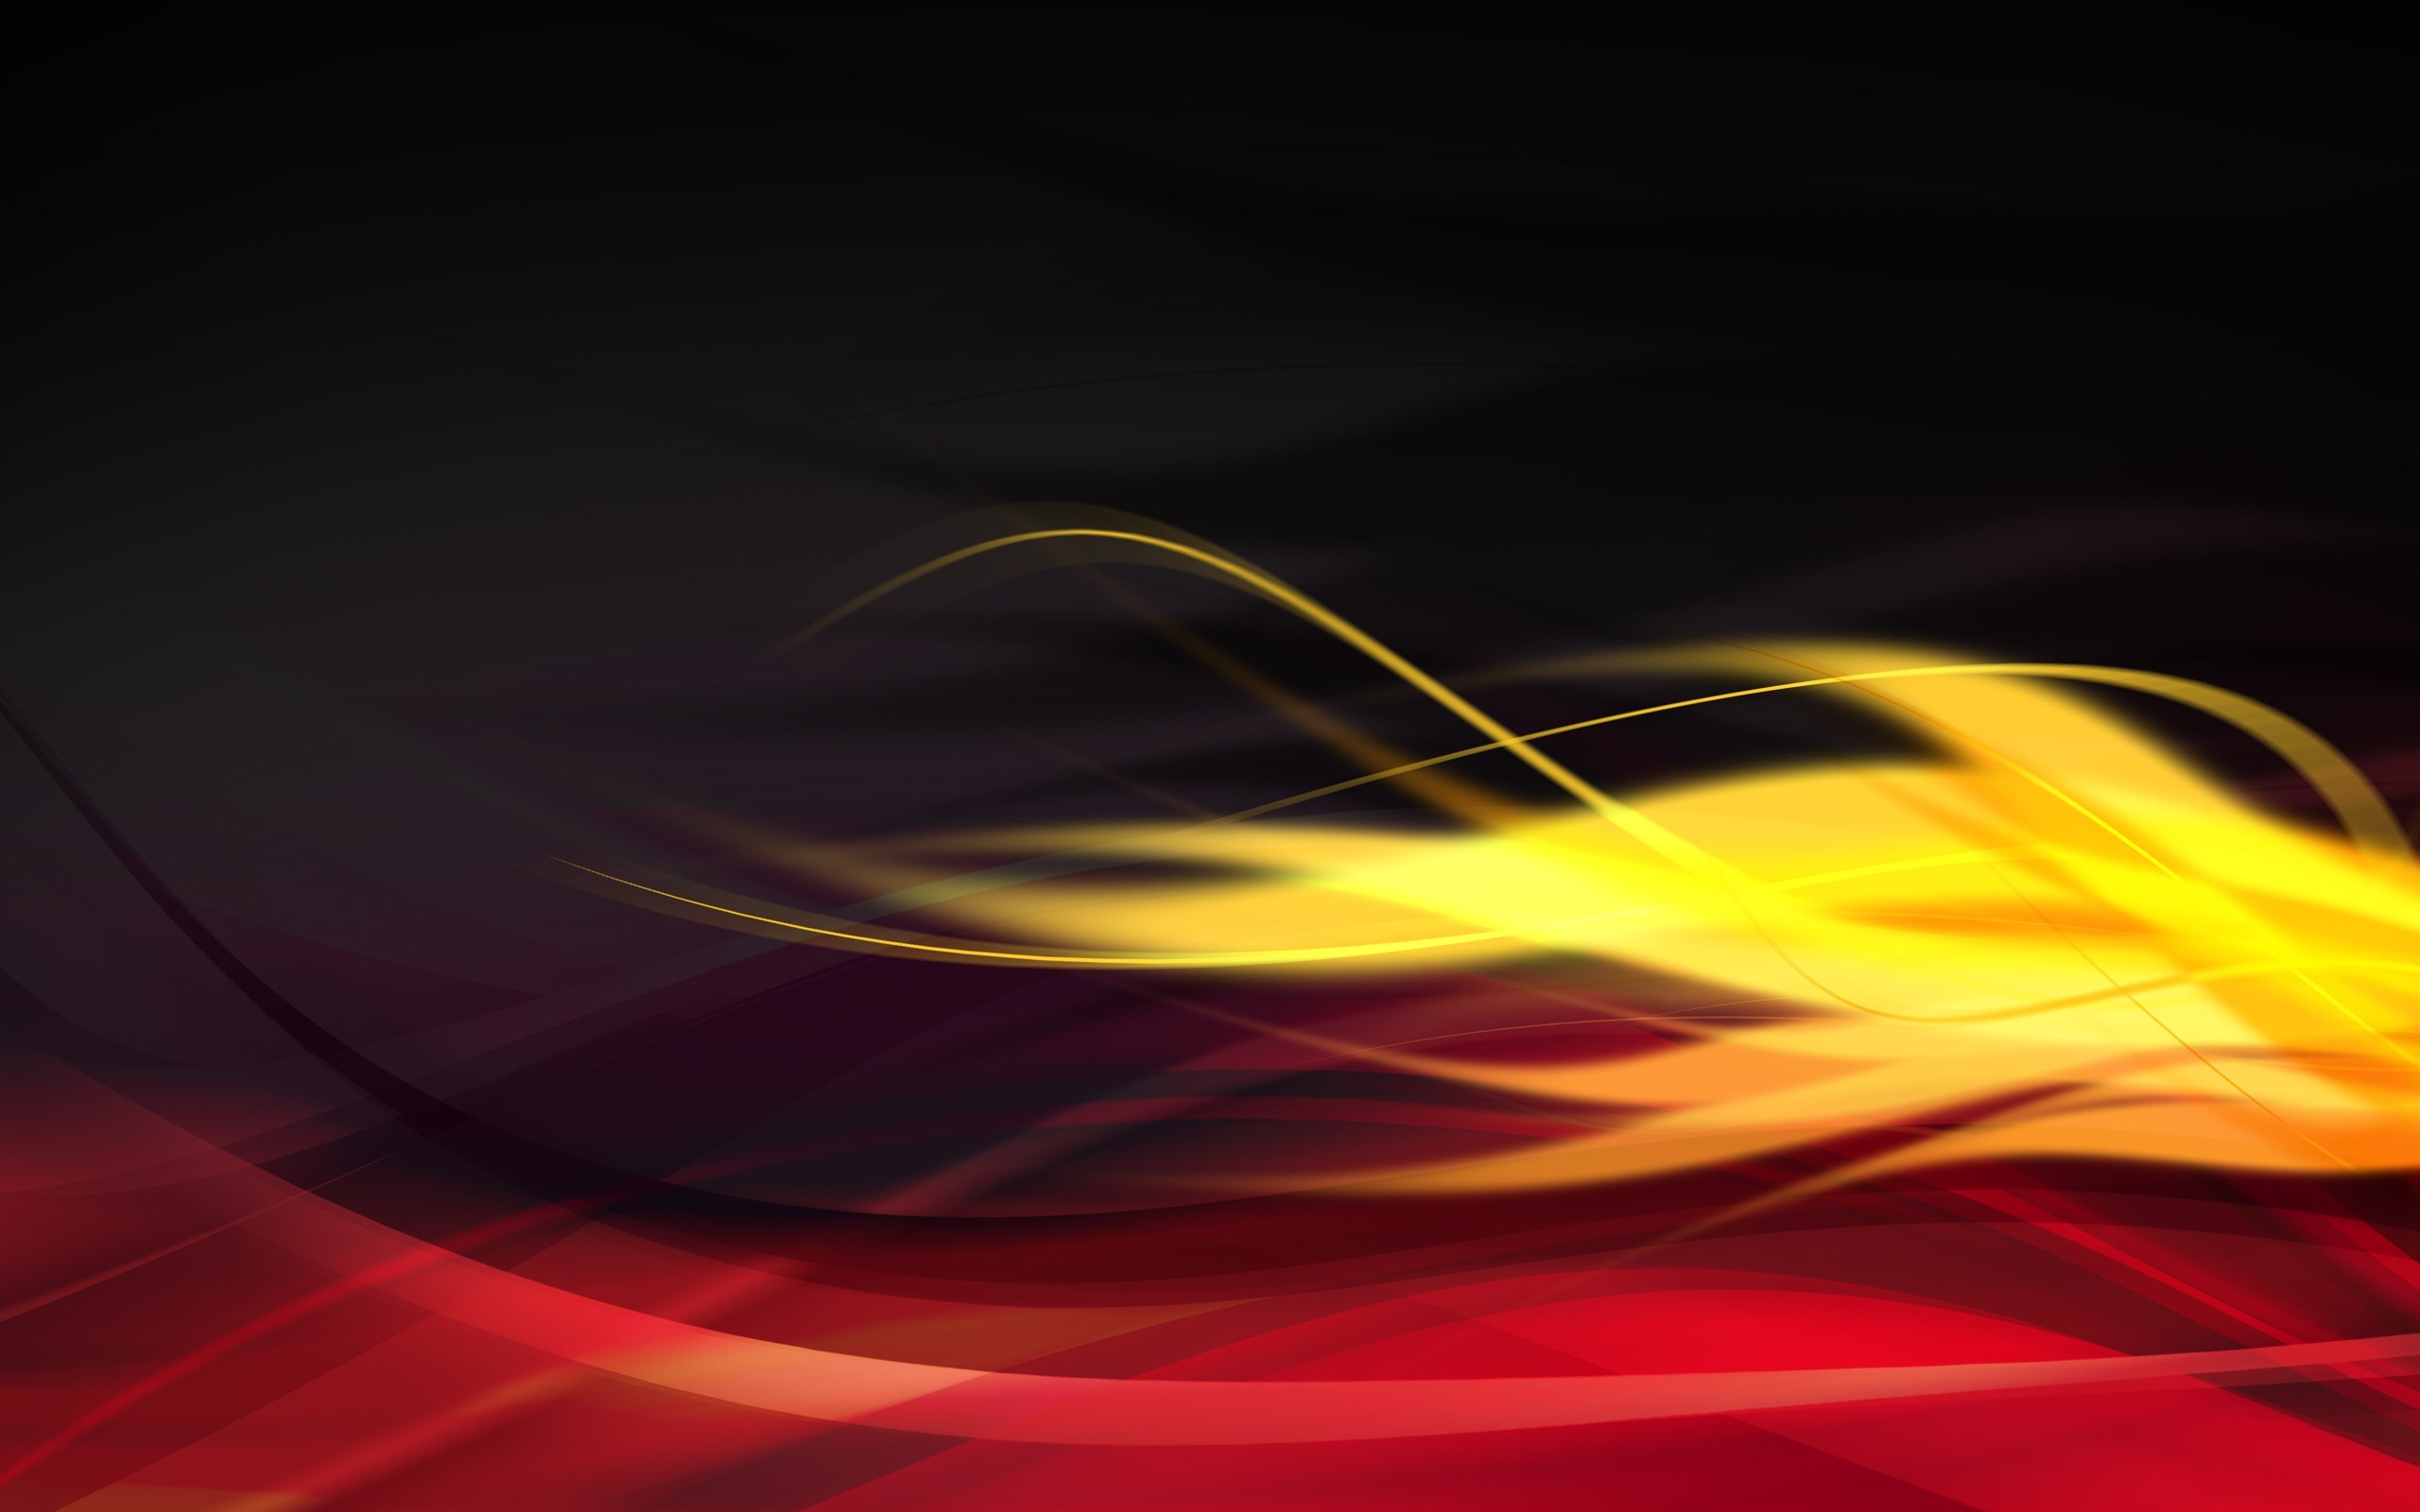 abstract, graphic design, wavy lines, red, yellow wallpapers hd